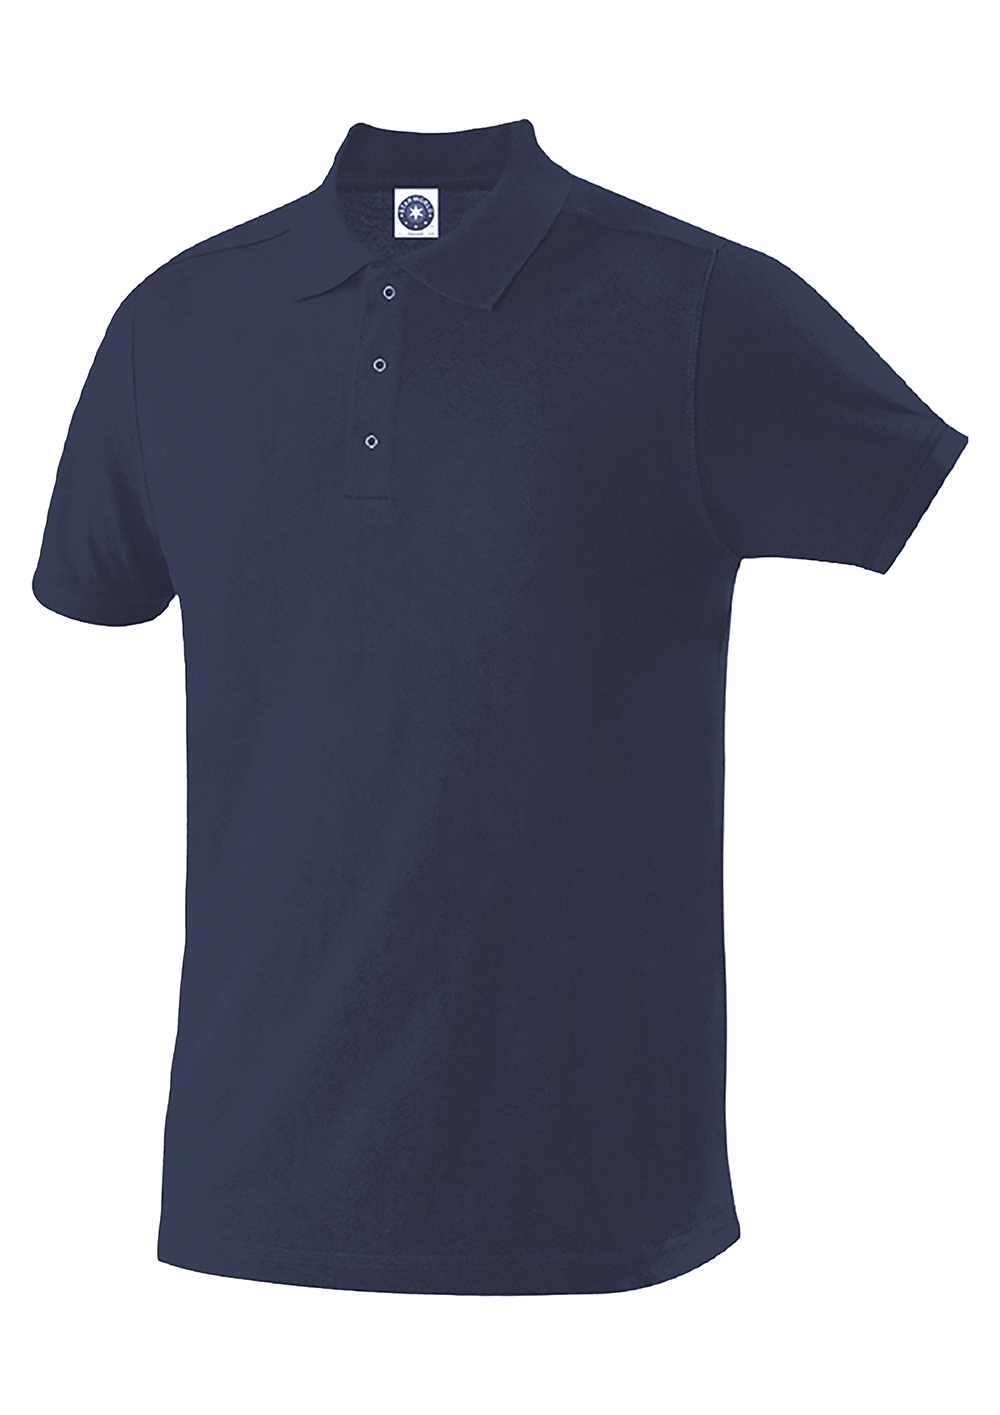 SW190-12-NavyBlue.png